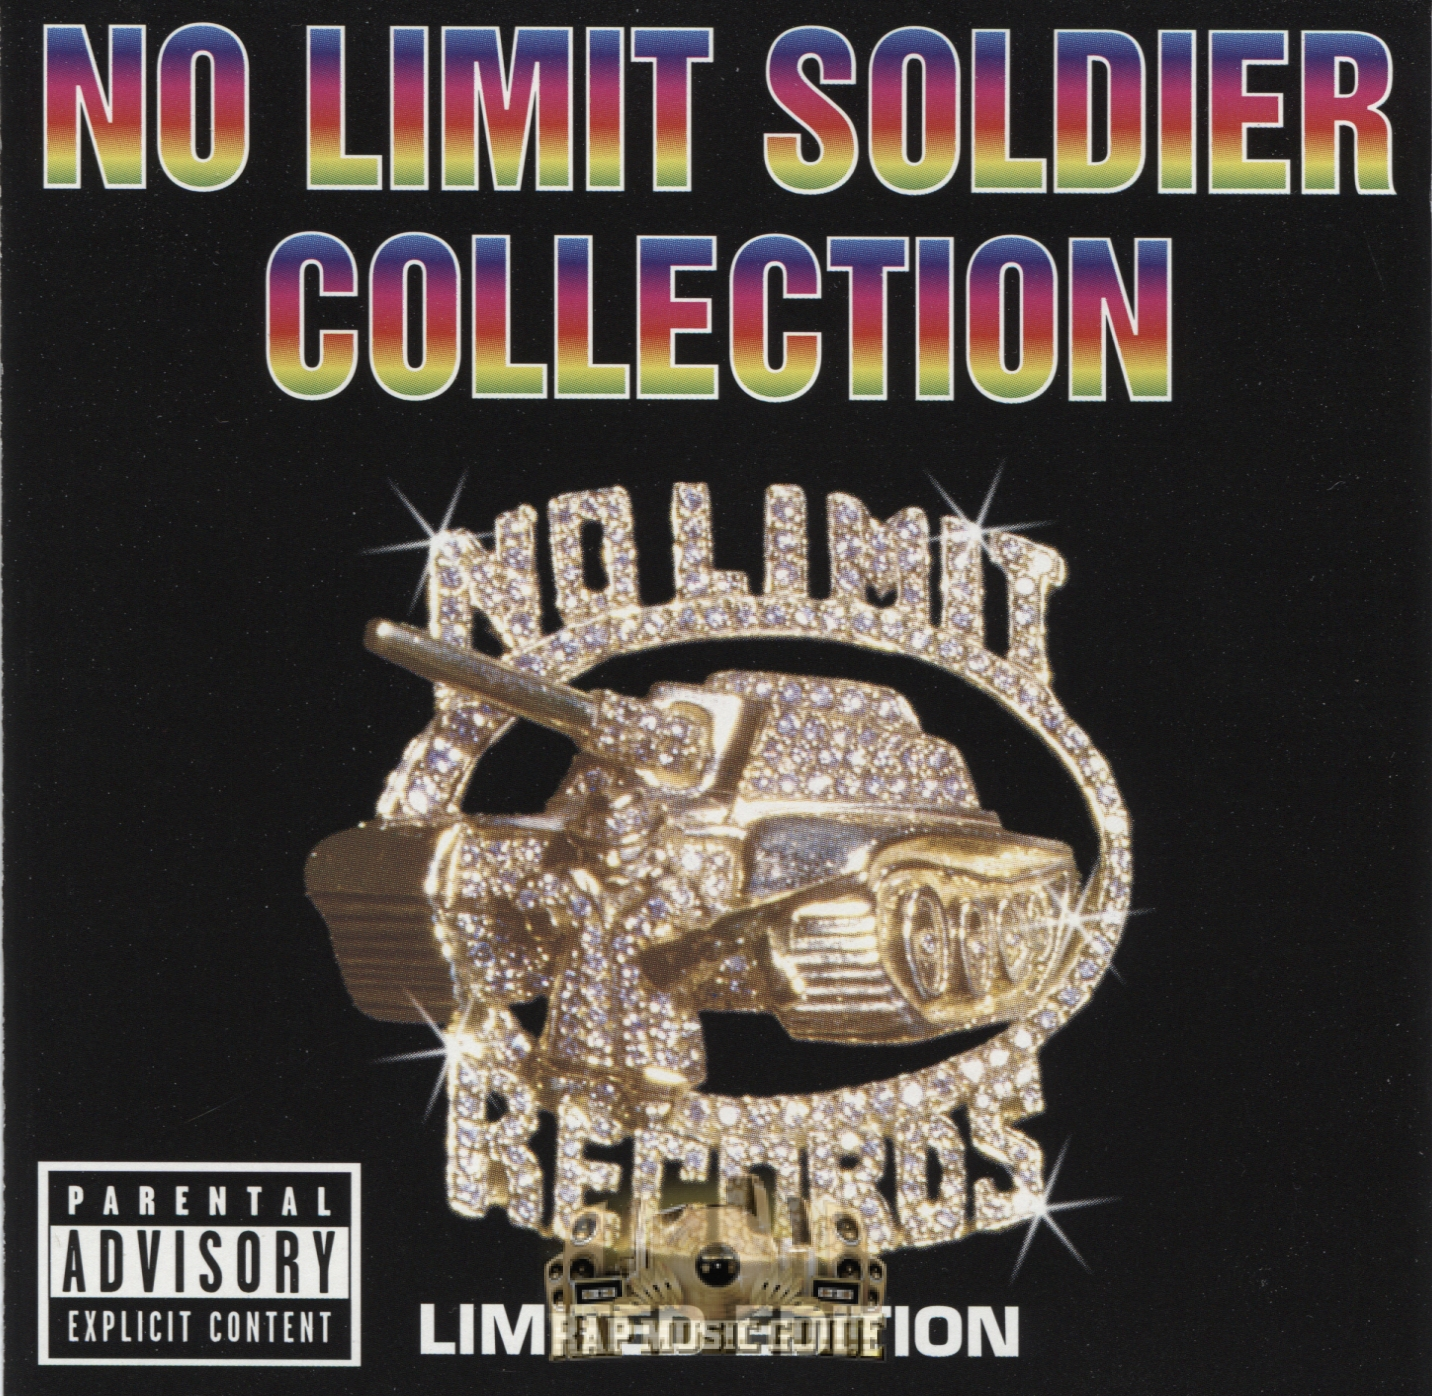 No Limit Soldier Collection - No Limit Soldier Collection ...